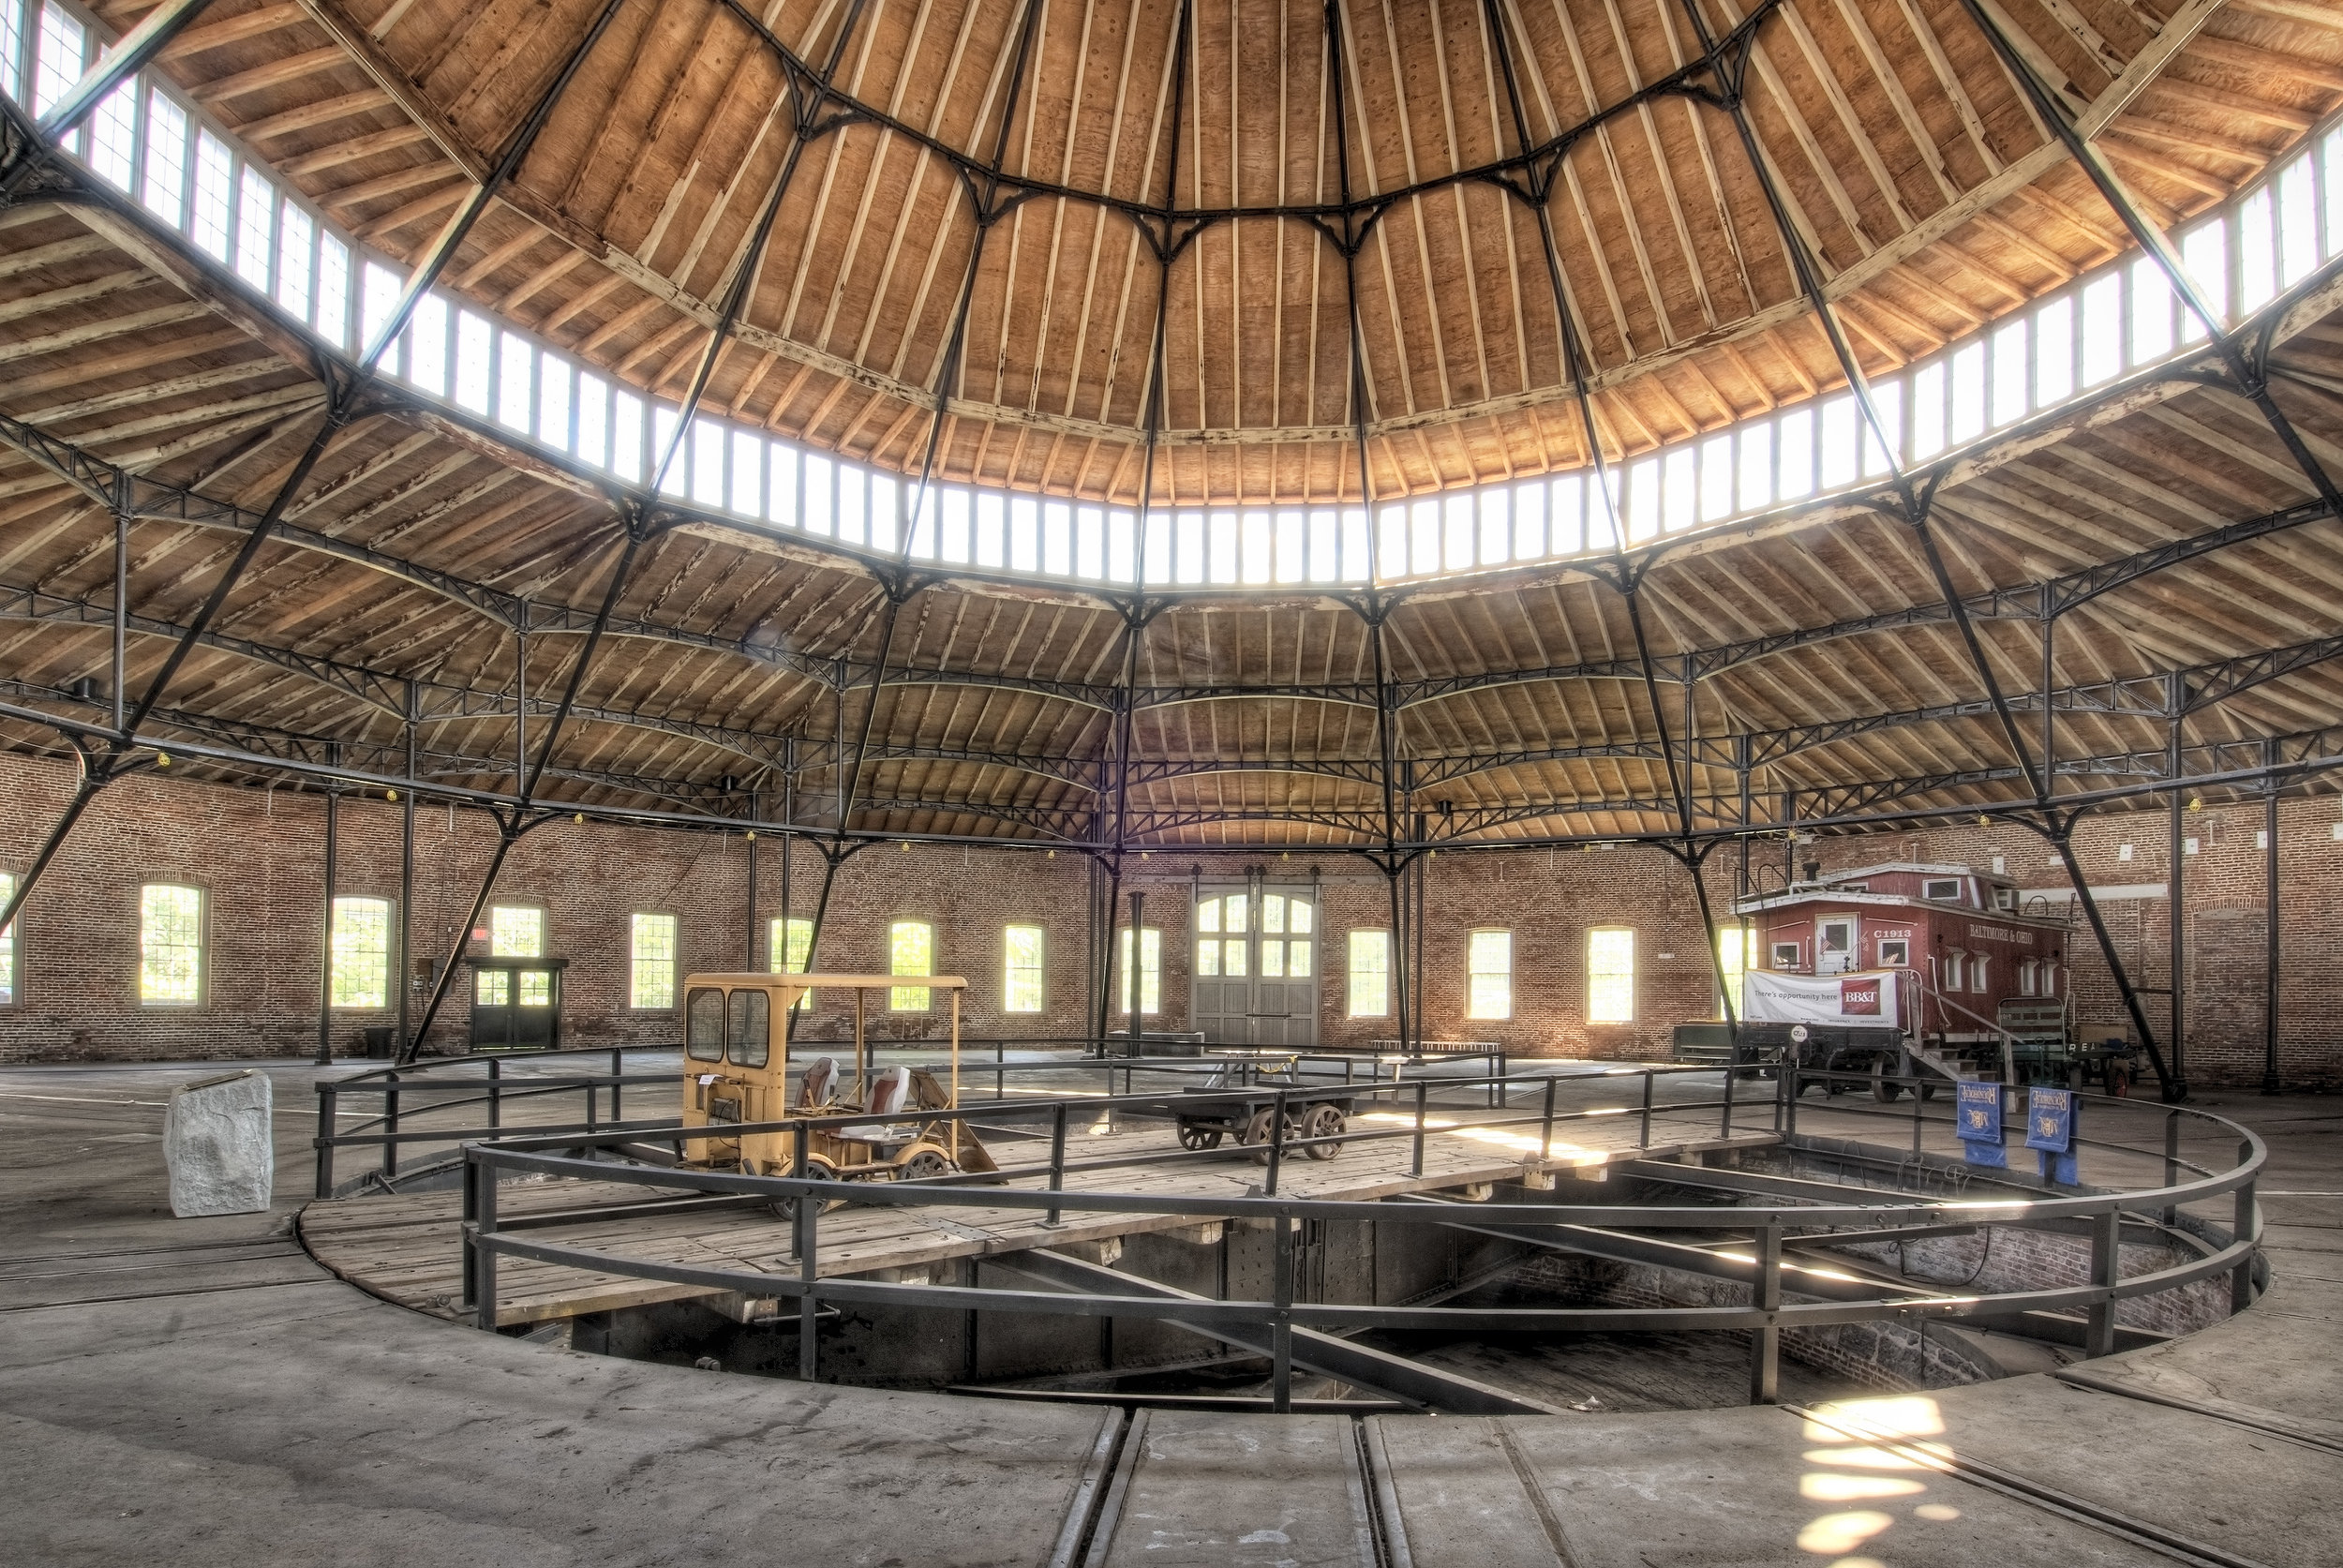 Interior of Roundhouse